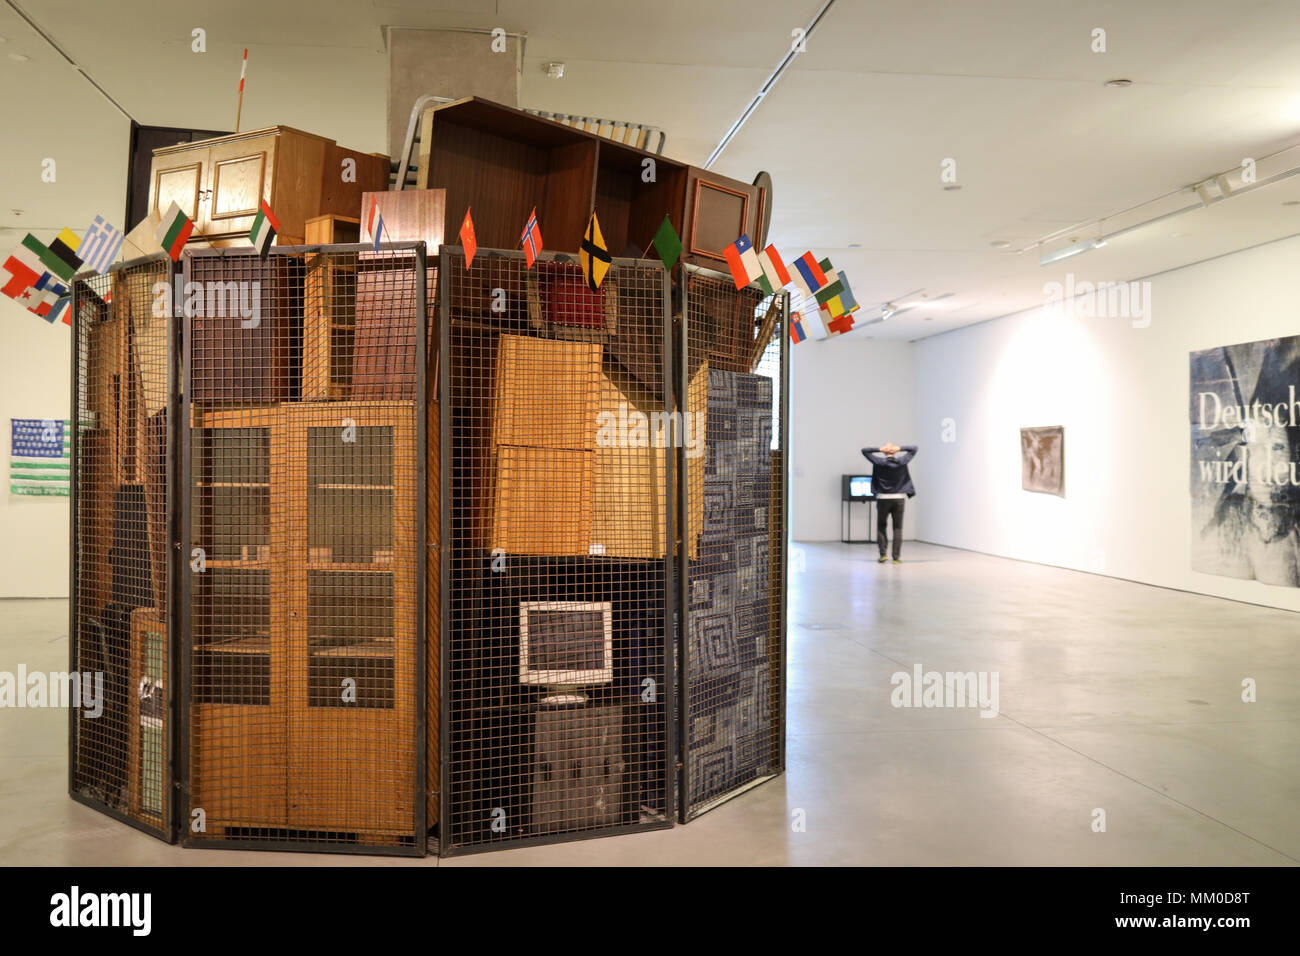 Cracow, Poland - May 8, 2018: Exibition Motherland in Art at Mocak in Krakow. Art installation by Jaroslaw Kozlowski - A United World,  the Totalitarian Version Credit: Wieslaw Jarek/Alamy Live News Stock Photo